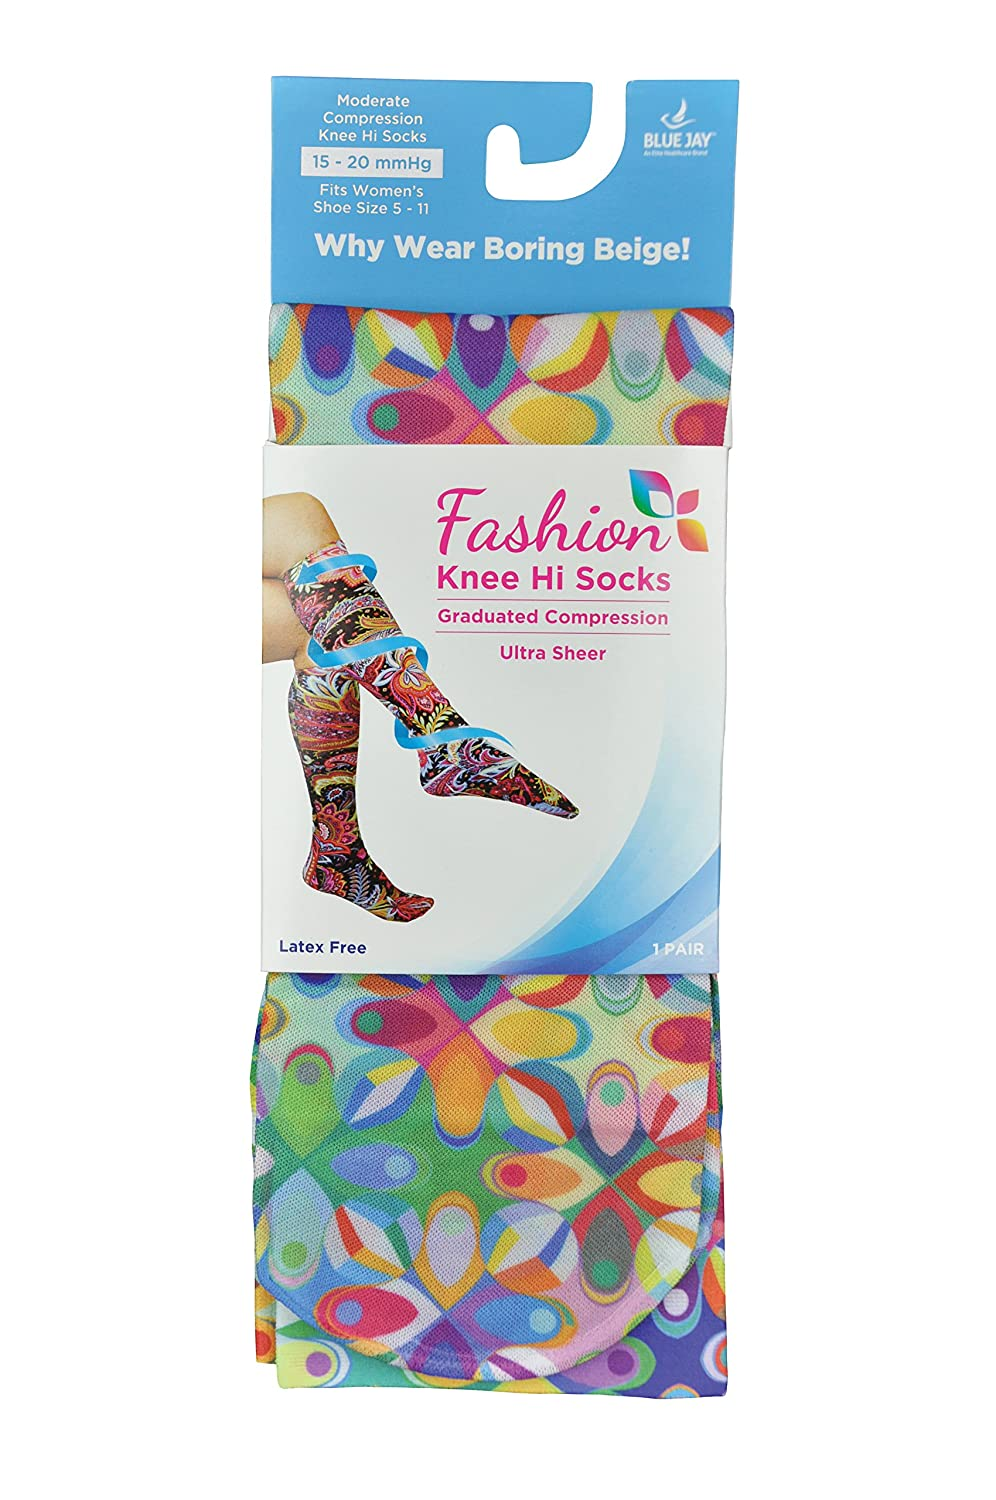 Abstract Colors 1 Pound Complete Medical Manufacturing Group BJ255240 Complete Medical Blue Jay Fashion Socks 15-20 mmHg